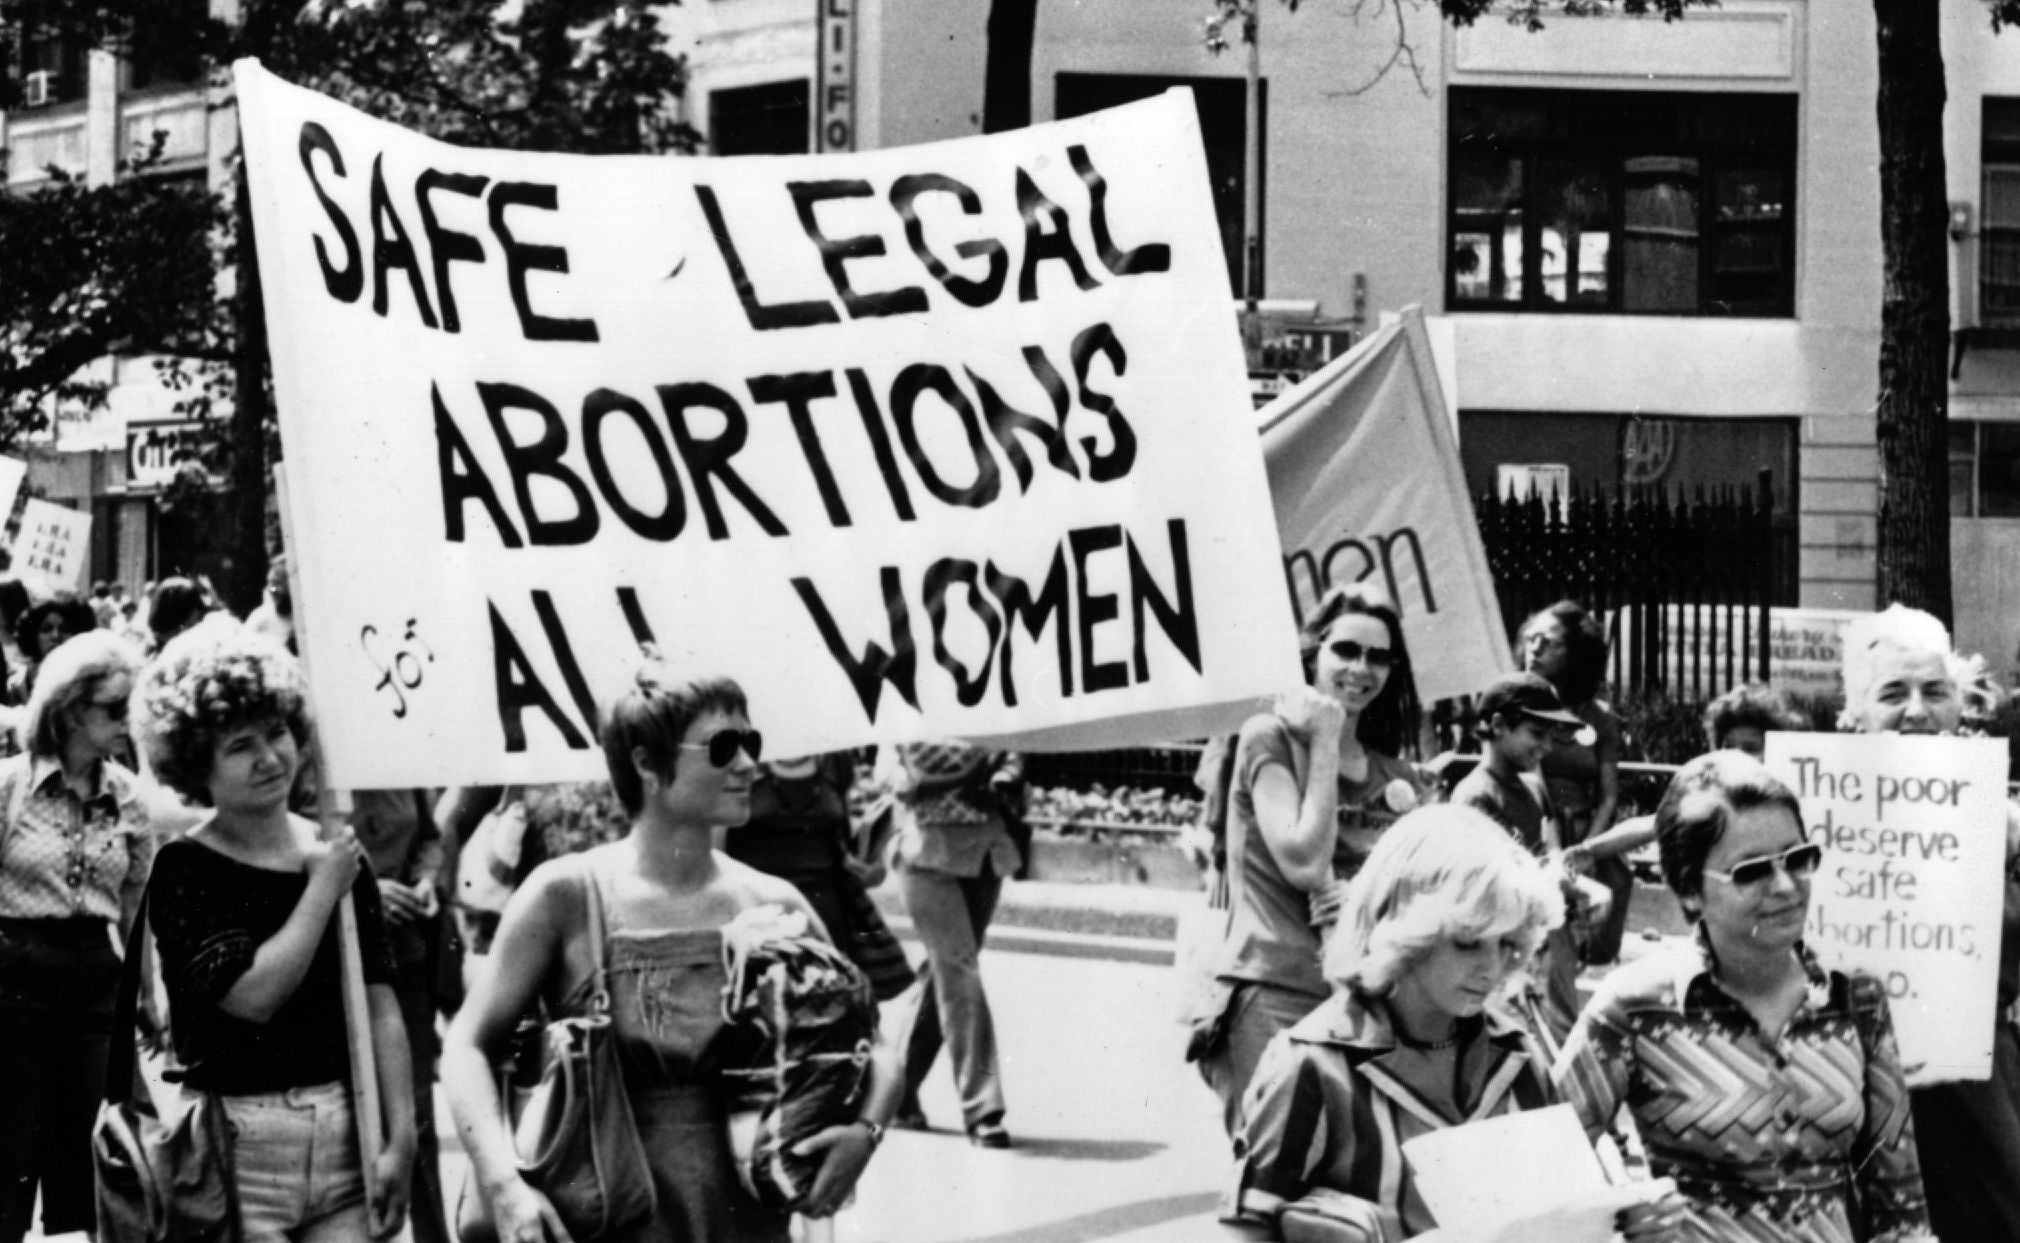 What causes women to have abortions essay